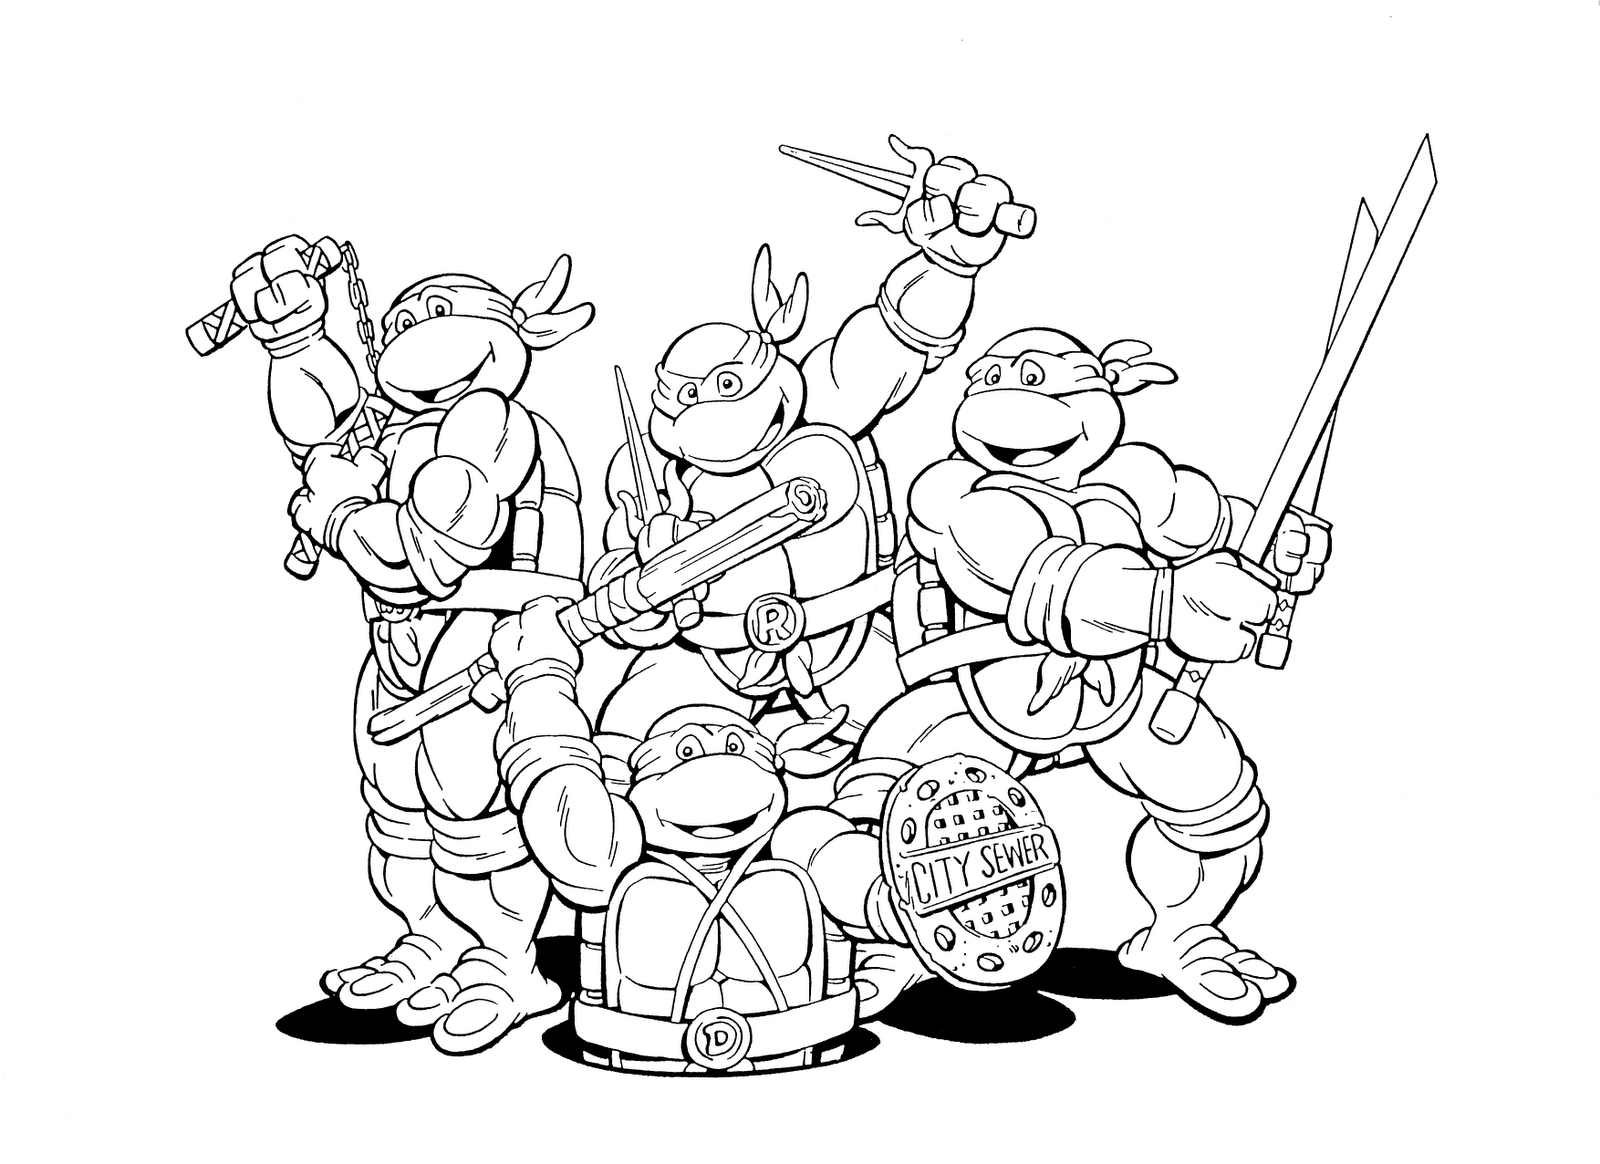 Ninja turtle coloring page coloring pages gallery for Coloring pages turtles ninja